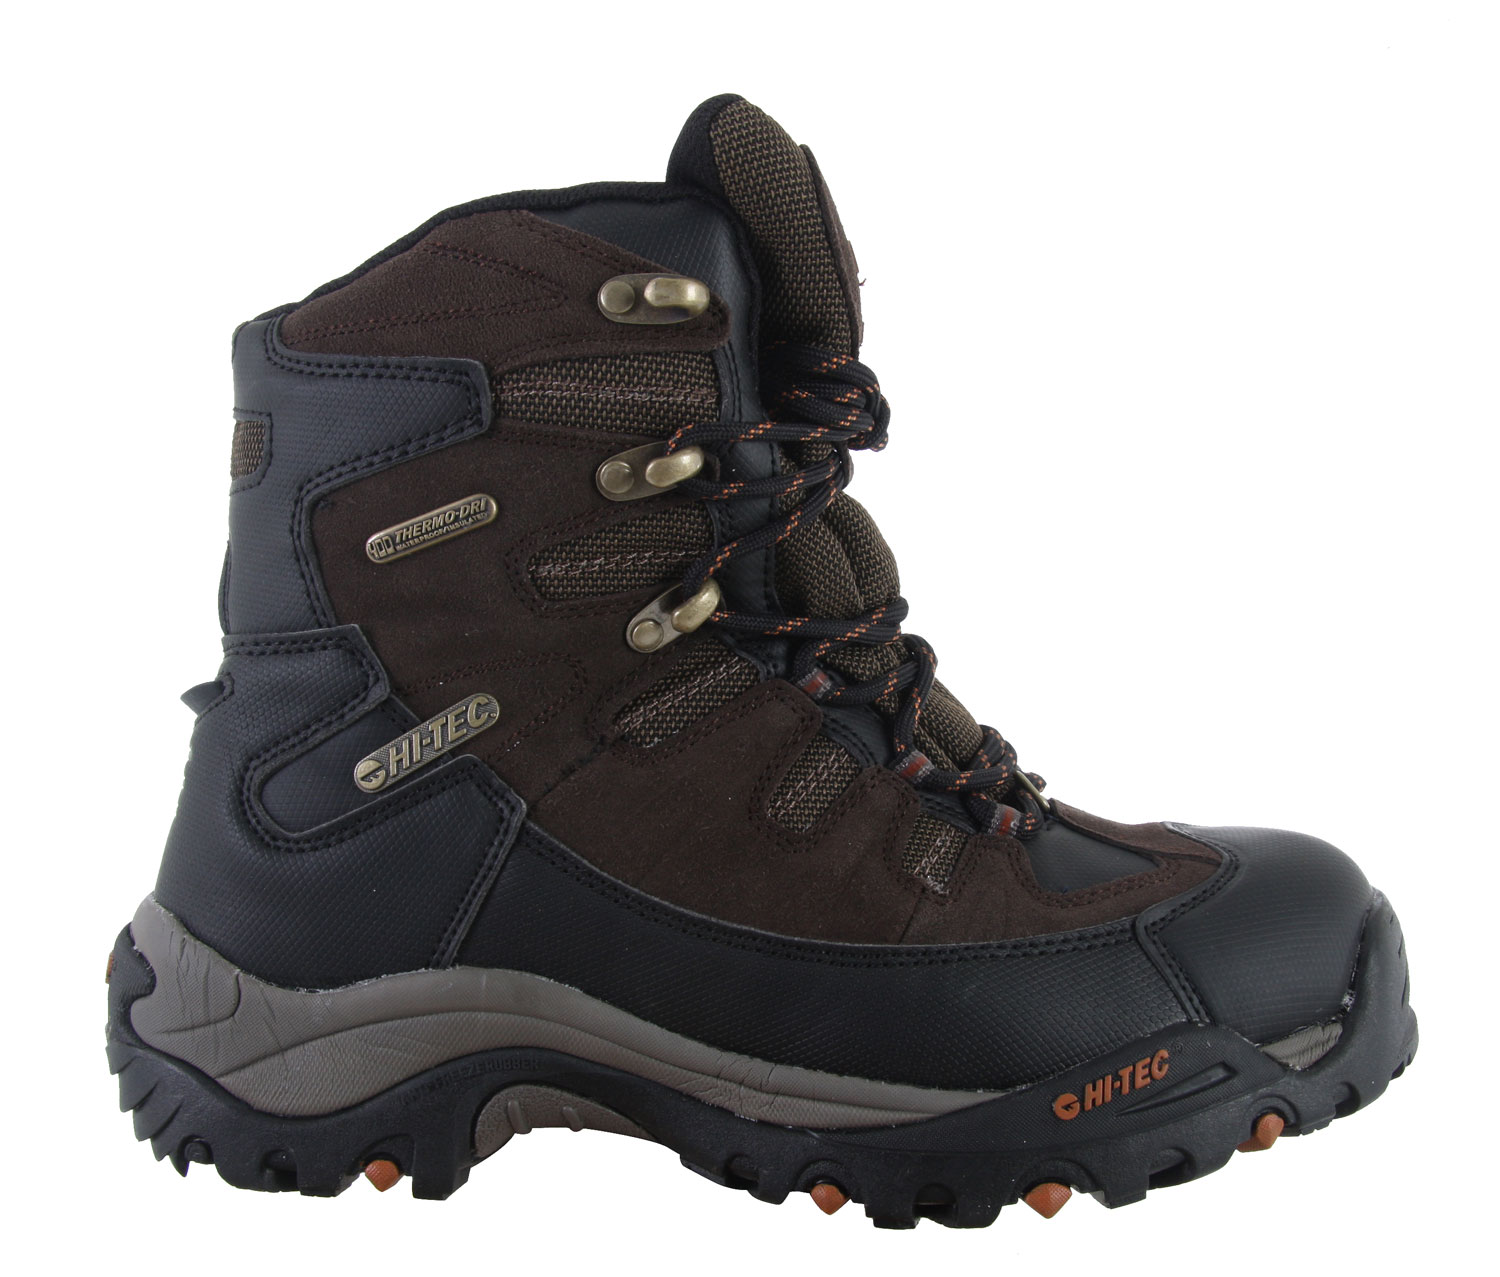 Camp and Hike Tired of getting soaked in the snow? In need of the perfect pair of boots to keep you warm, and protected all season long? The solution is this, the Hitec Jackson Hole 400 Casual Boots. Made with super high quality, this all in one boot features a waterproof construction. Block out all the snow and stay dry. With the right traction and cushion this boot has to offer, you'll feel comfortable. Go fight the snow with the Hitec Jackson Hole 400 Casual Boots and you'll be highly satisfied with the quality these boots have to offer.Key Features of the Hitec Jackson Hole 400 Casual Boots: Waterproof Suede Leather And Mesh Upper Thermo-Dri@ Waterproof And Insulated Systems Ghillie Lace System Metal Top Hooks Abrasion-Resistant Heel And Toecap For Protection Heel Kickoff Design For Easy Shoe-Removal Comfort-Tec Sockliner Waterproof Bootie Construction Board Lasted With Steel Shank For Added Rigidity Cmeva Midsole For Cushioning Winter Siping Outsole Pads For Winter Traction - $71.95